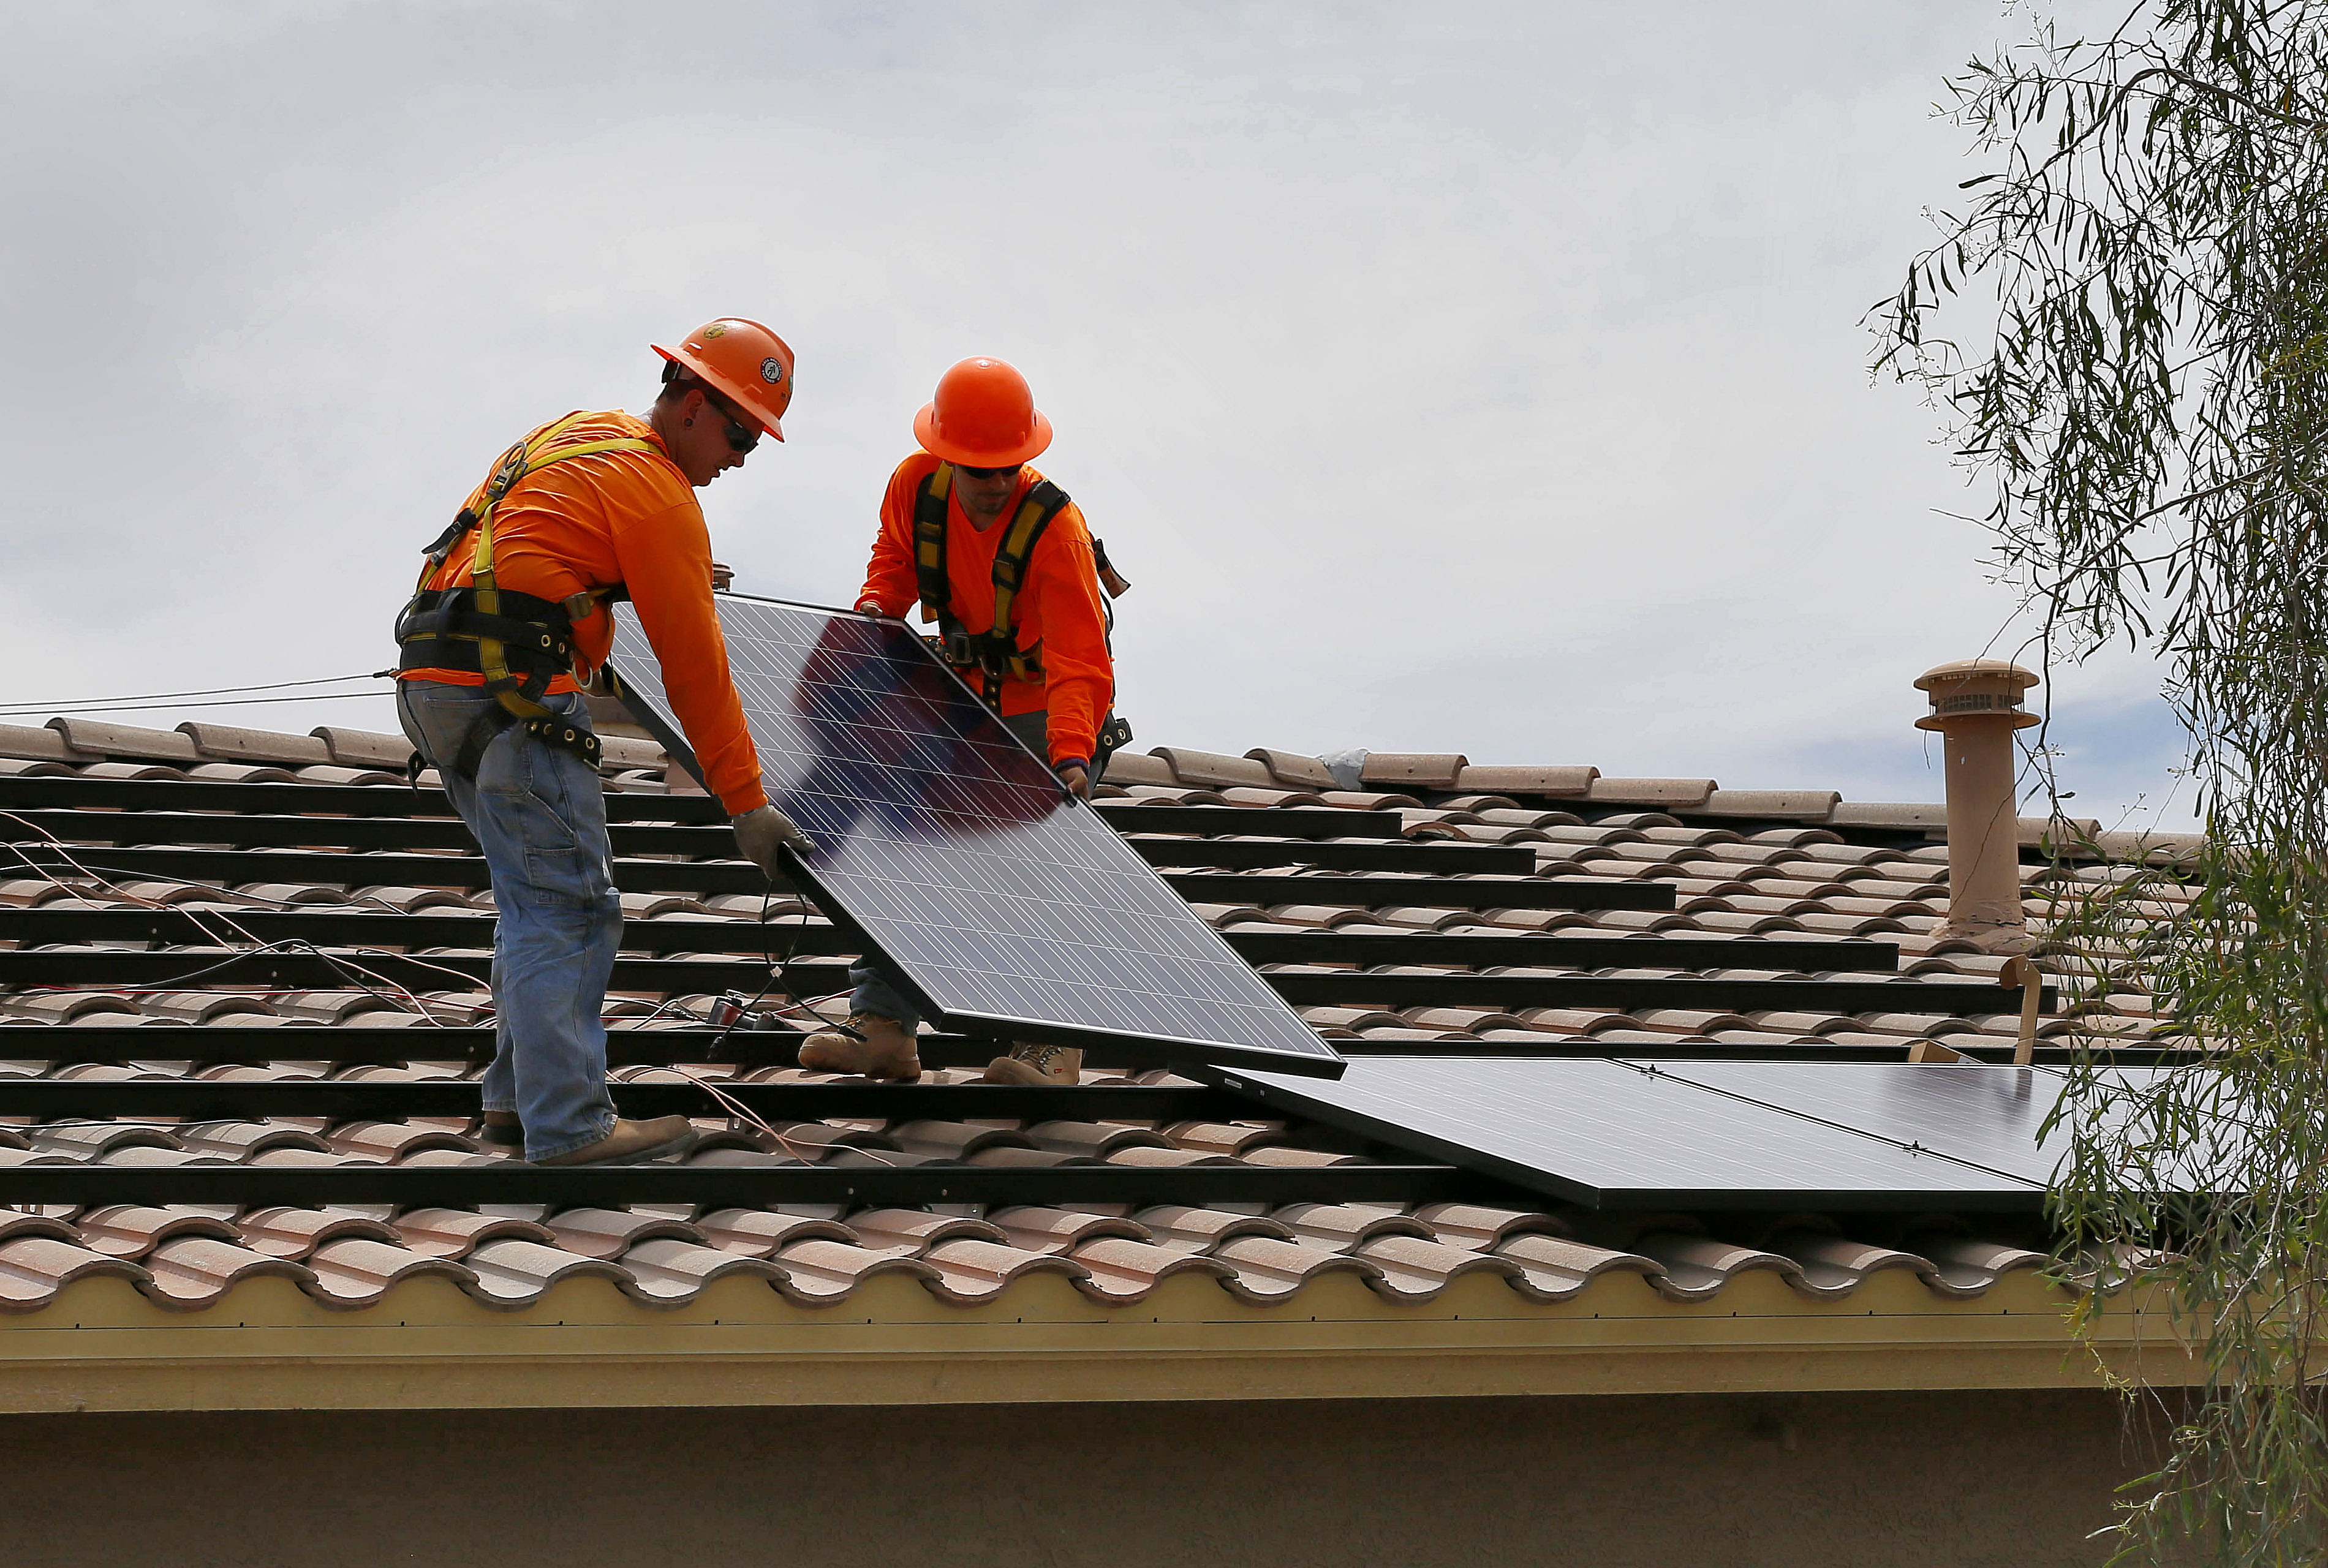 <p>In this July 28, 2015, photo, electricians Adam Hall, right, and Steven Gabert, install solar panels on a roofin Goodyear, Ariz.</p>